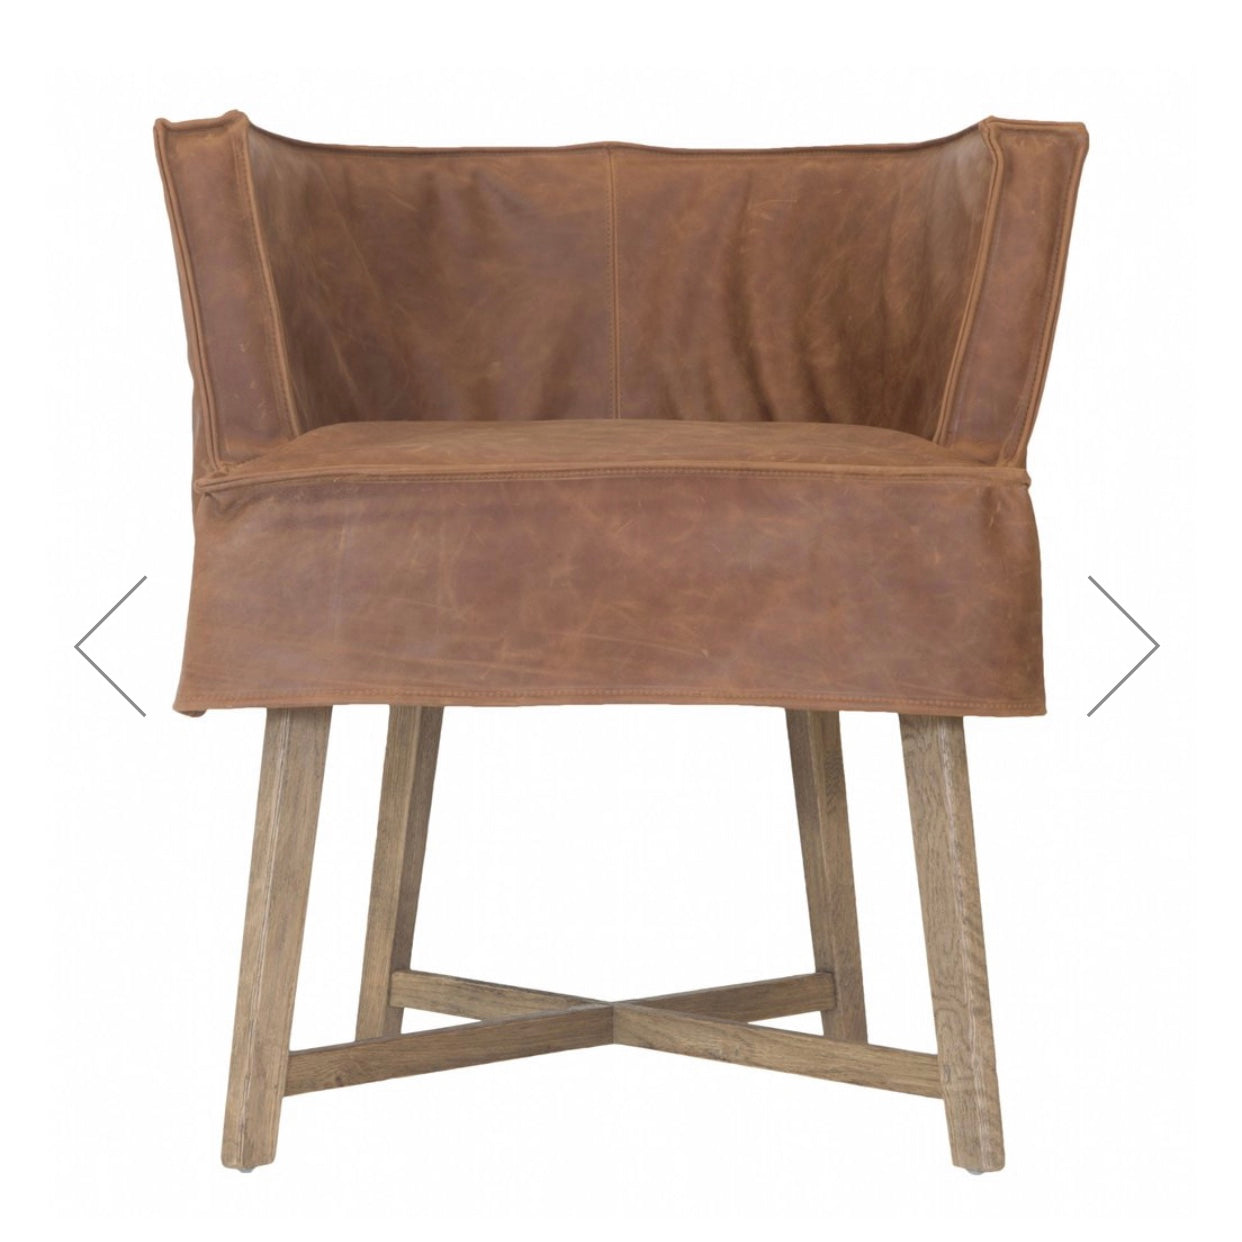 Guatemala Dining Chair - Brogan Brown